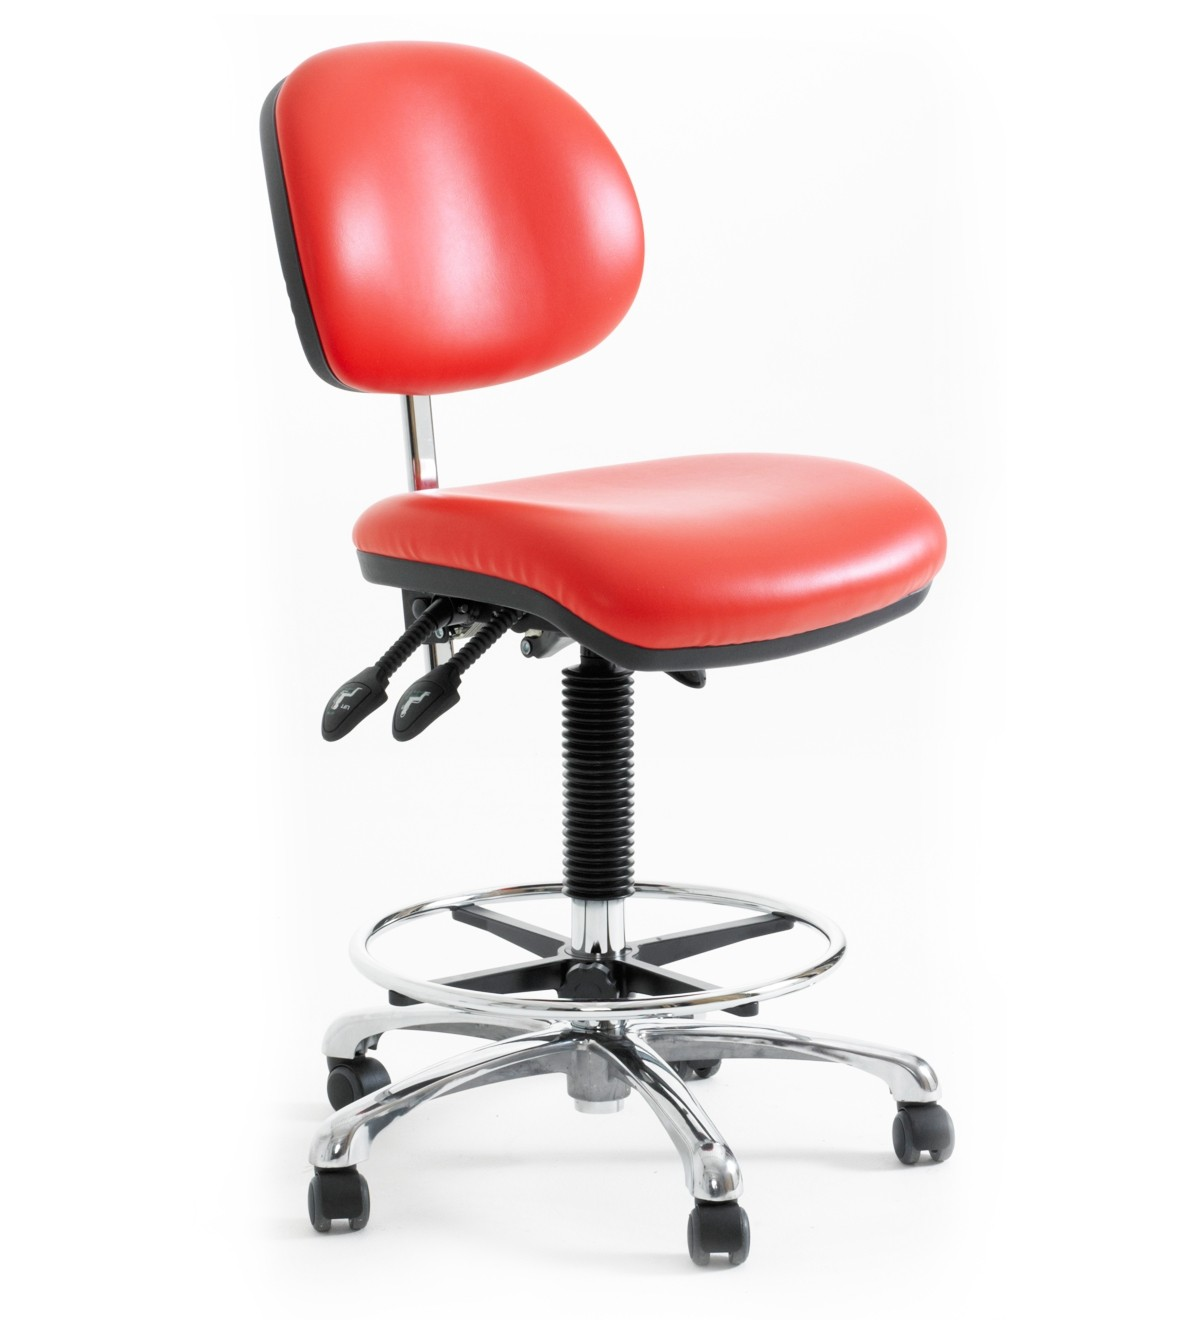 C30 - Low chair  550-740mm height adjustment